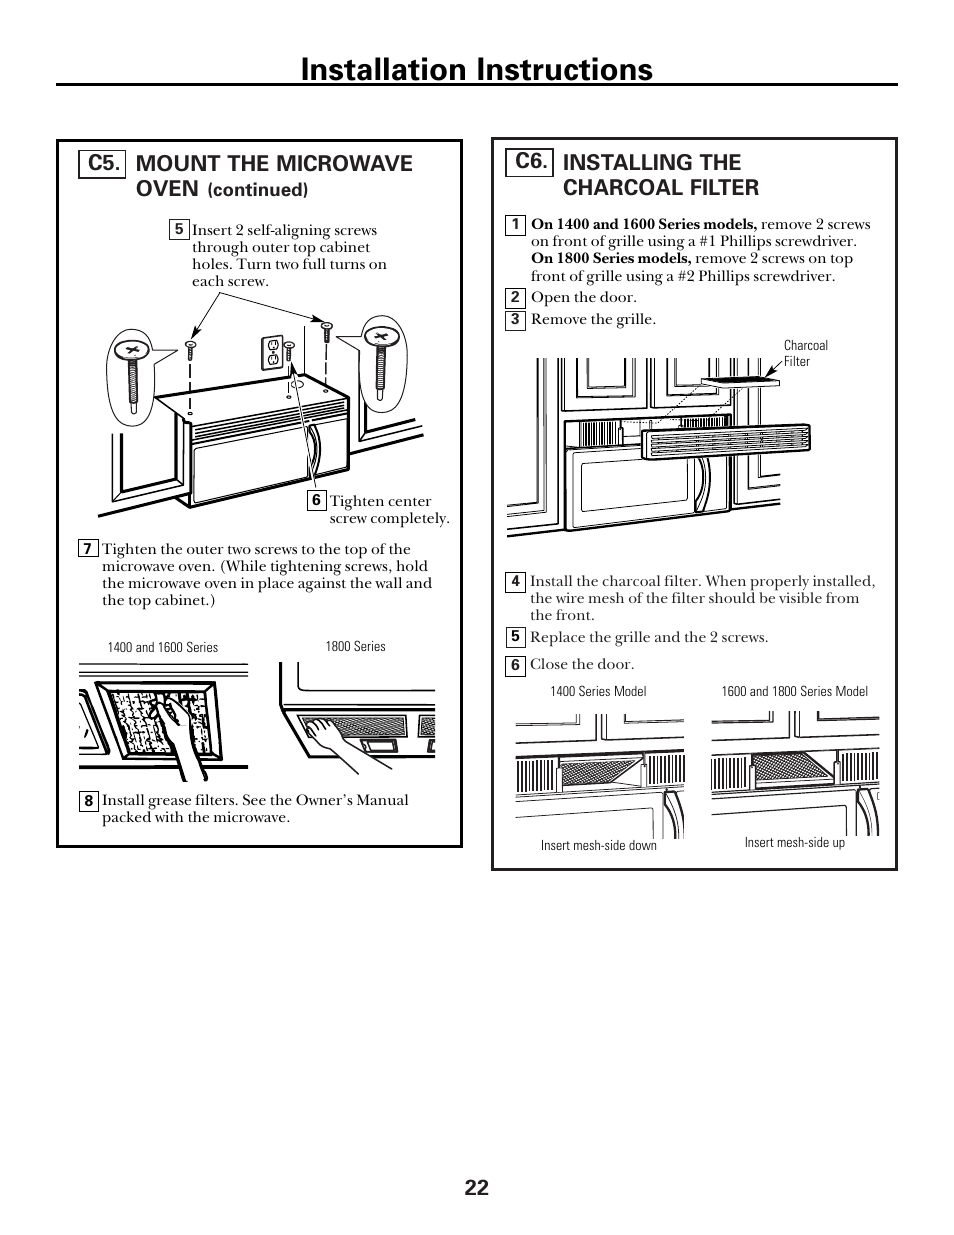 hight resolution of installing the charcoal filter installation instructions ge spacemaker xl1800 user manual page 22